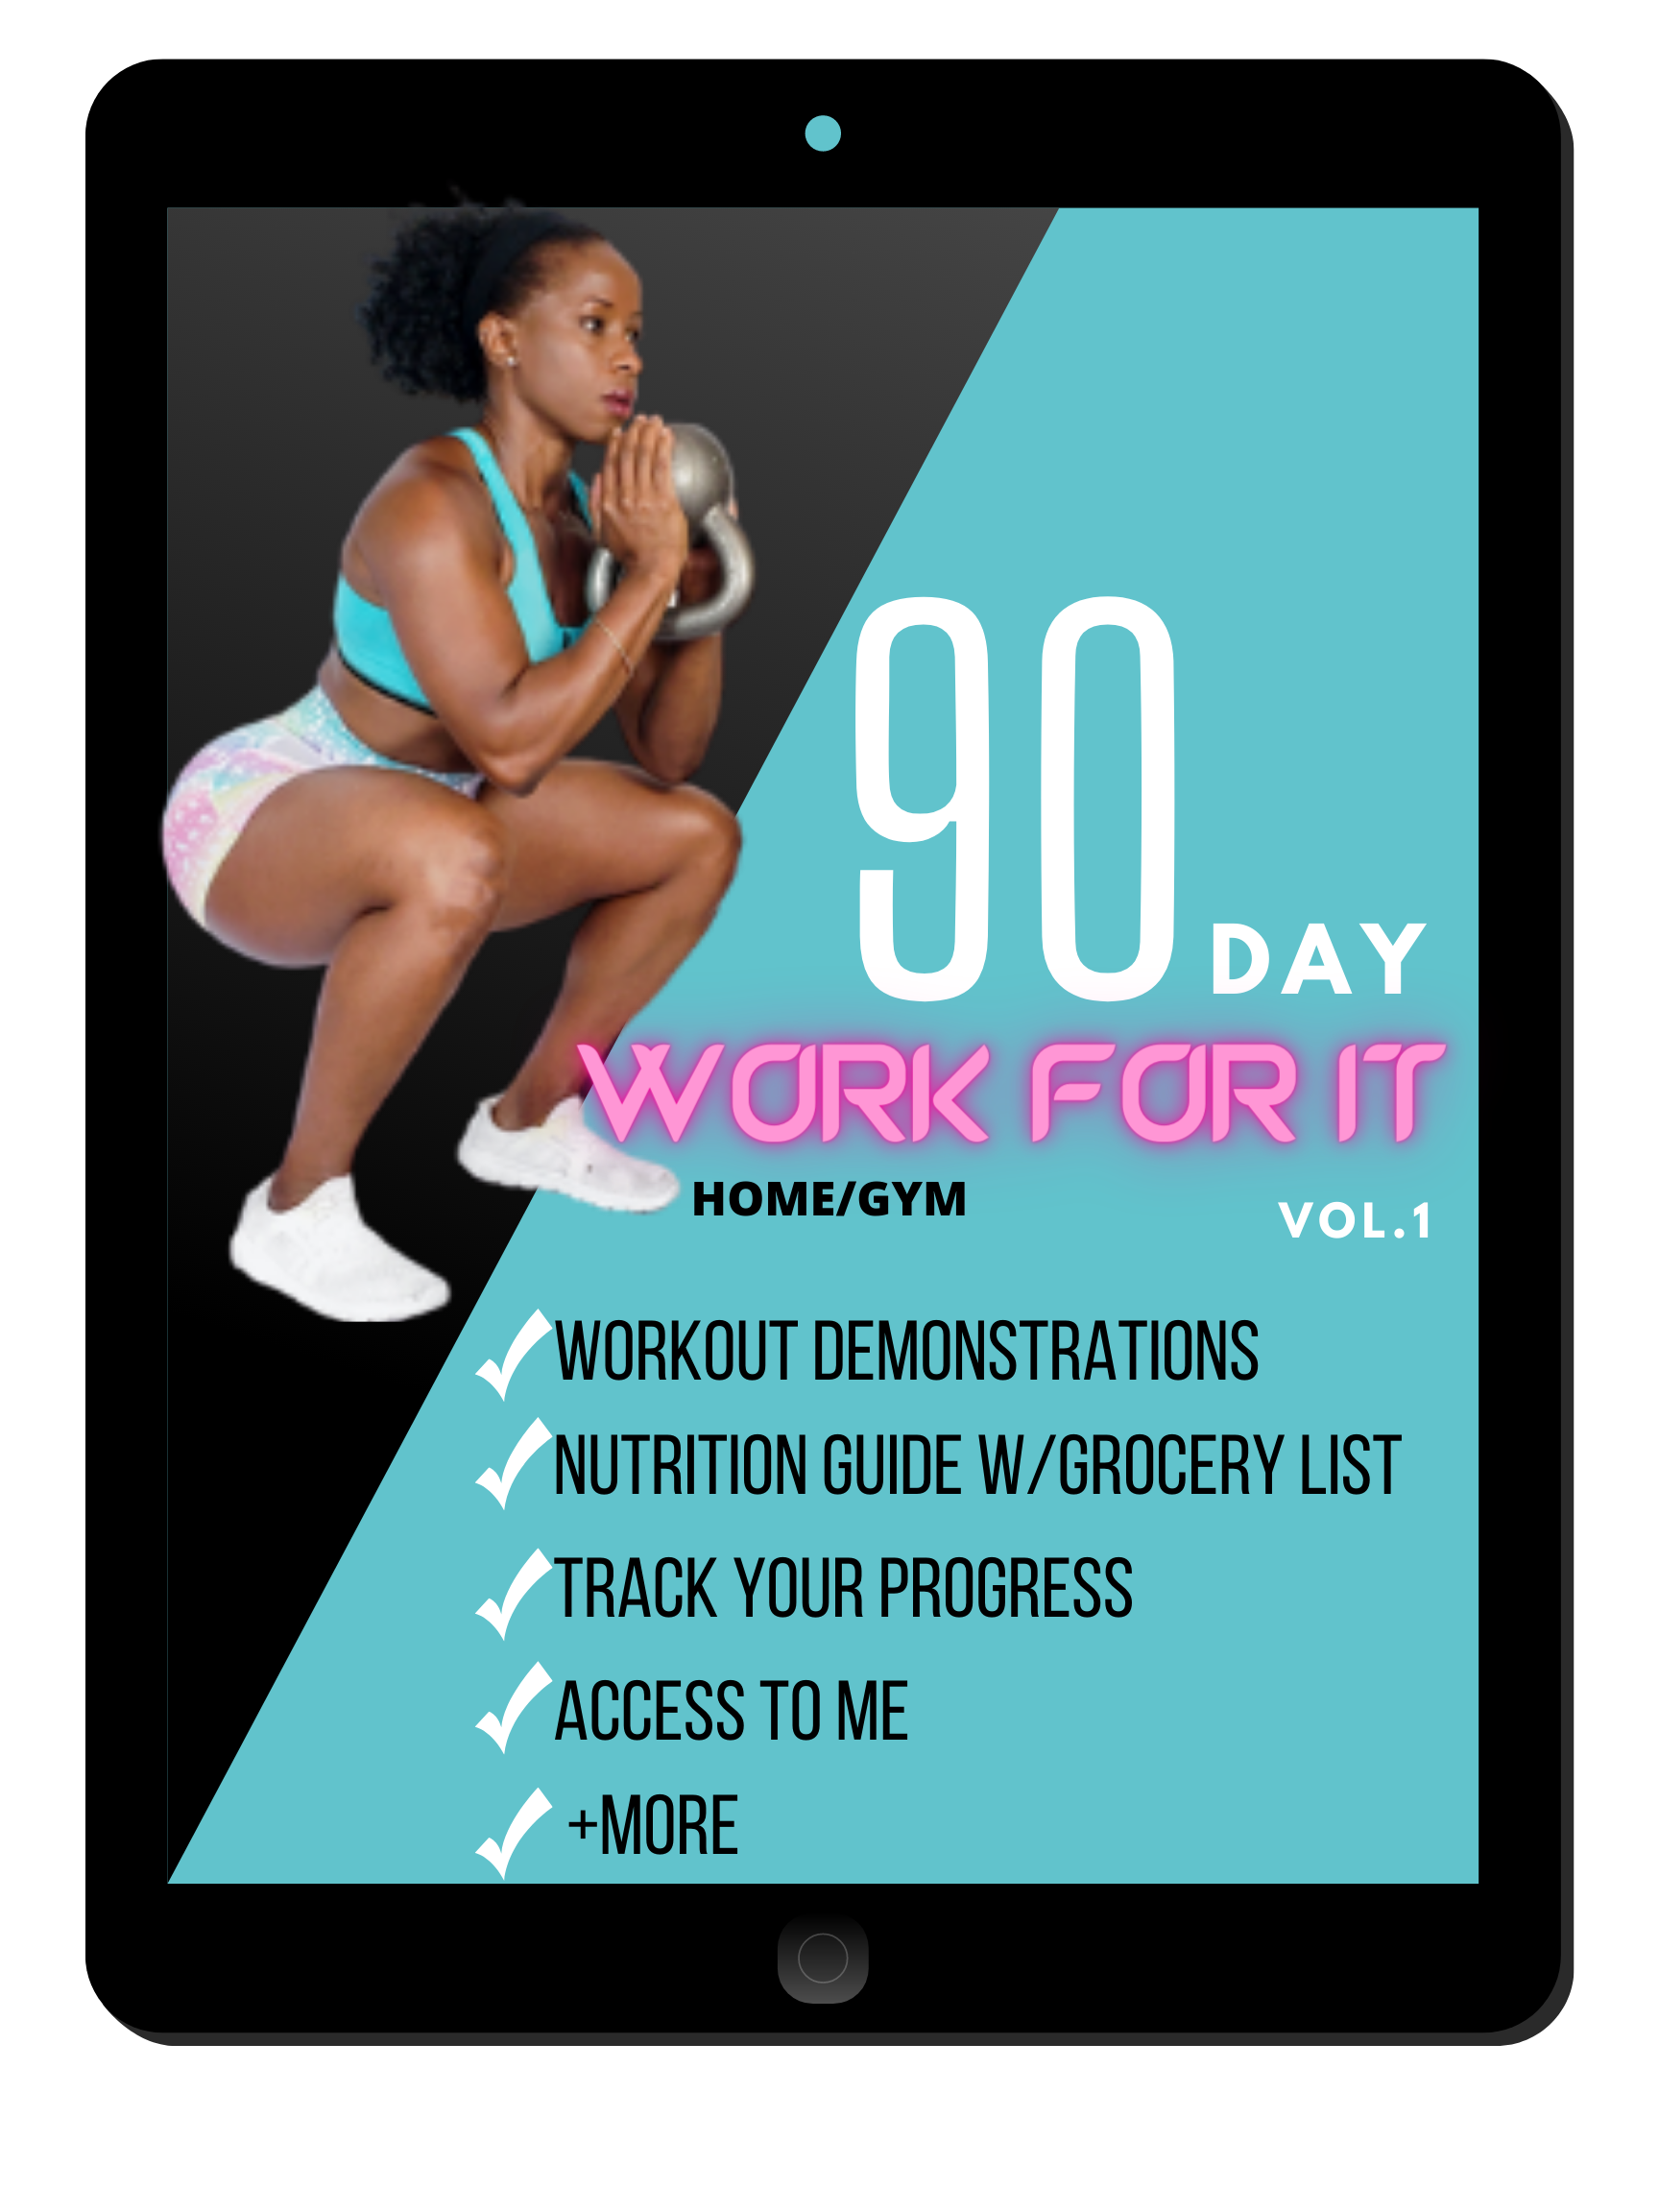 90 Day Work For IT vol.1